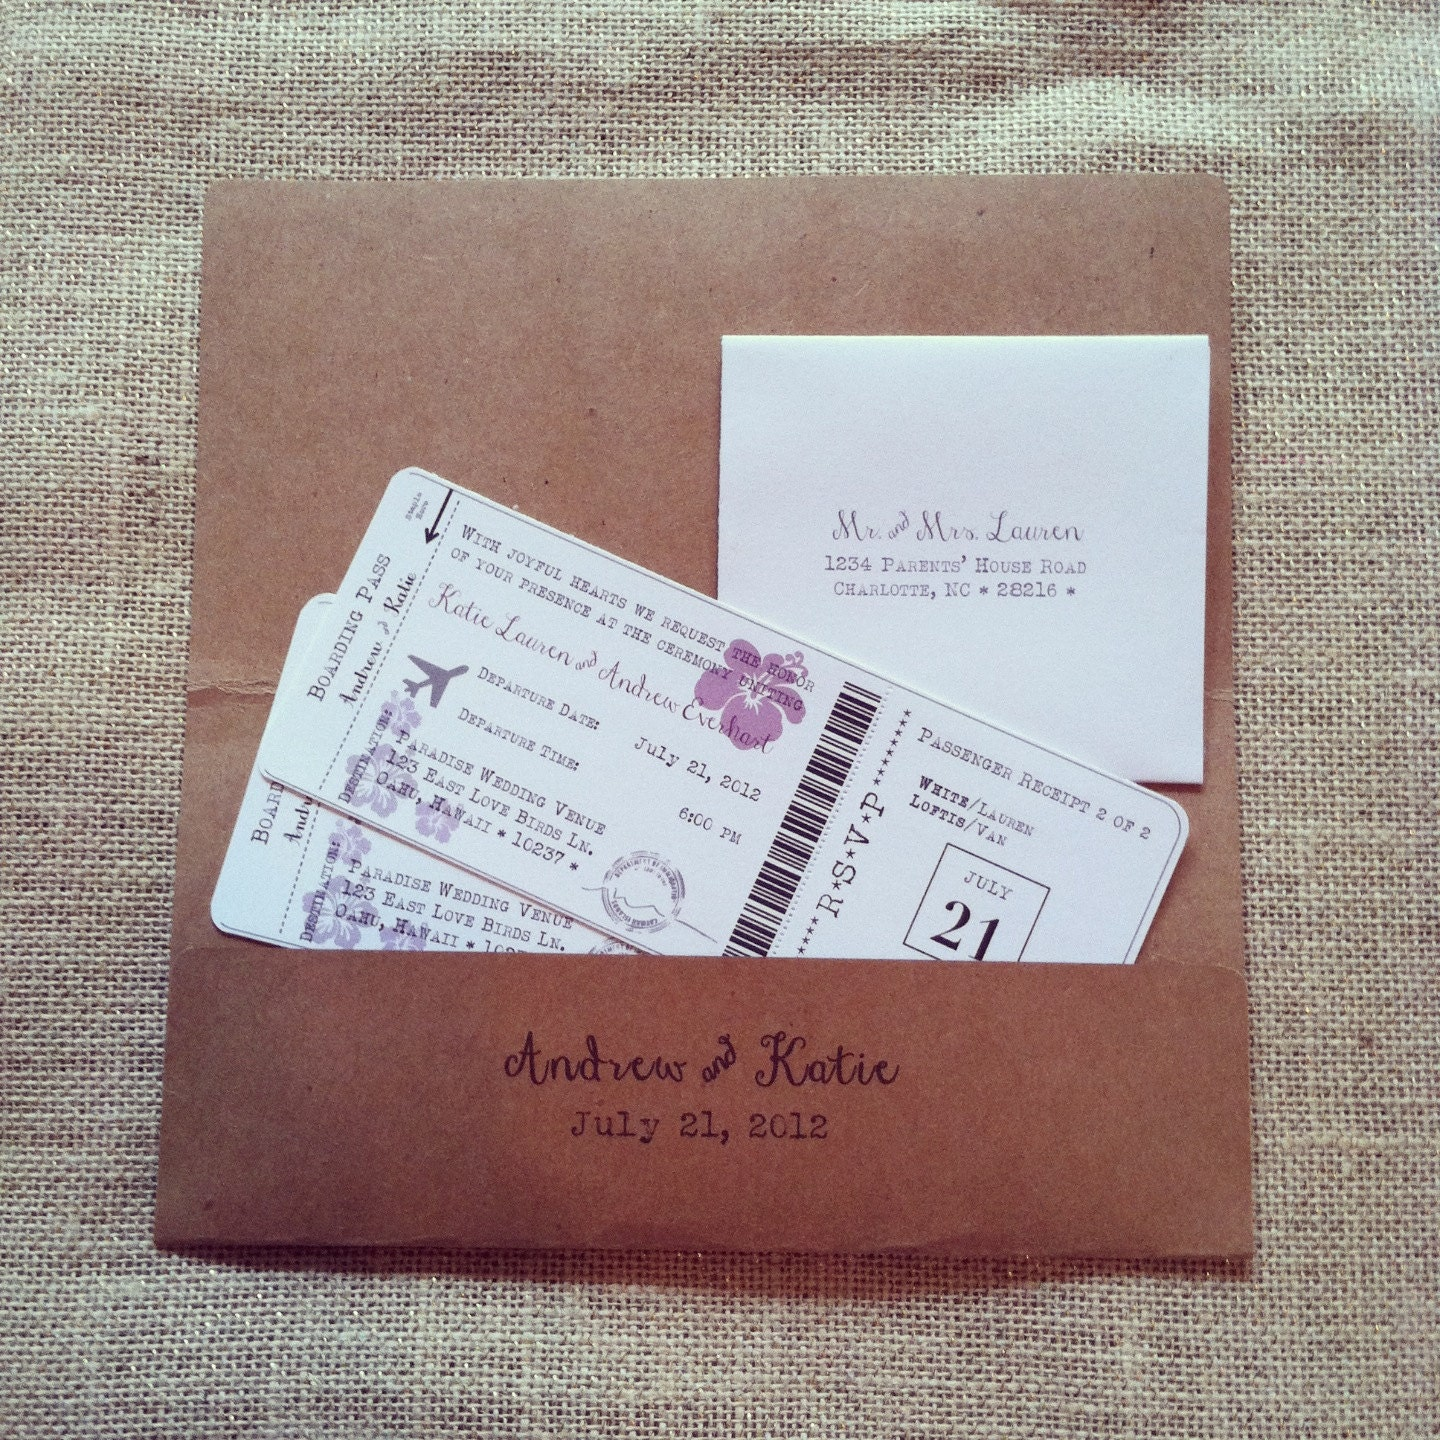 Wedding Abroad Invitation Wording Ideas: Boarding Pass Destination Wedding Invitation Set By